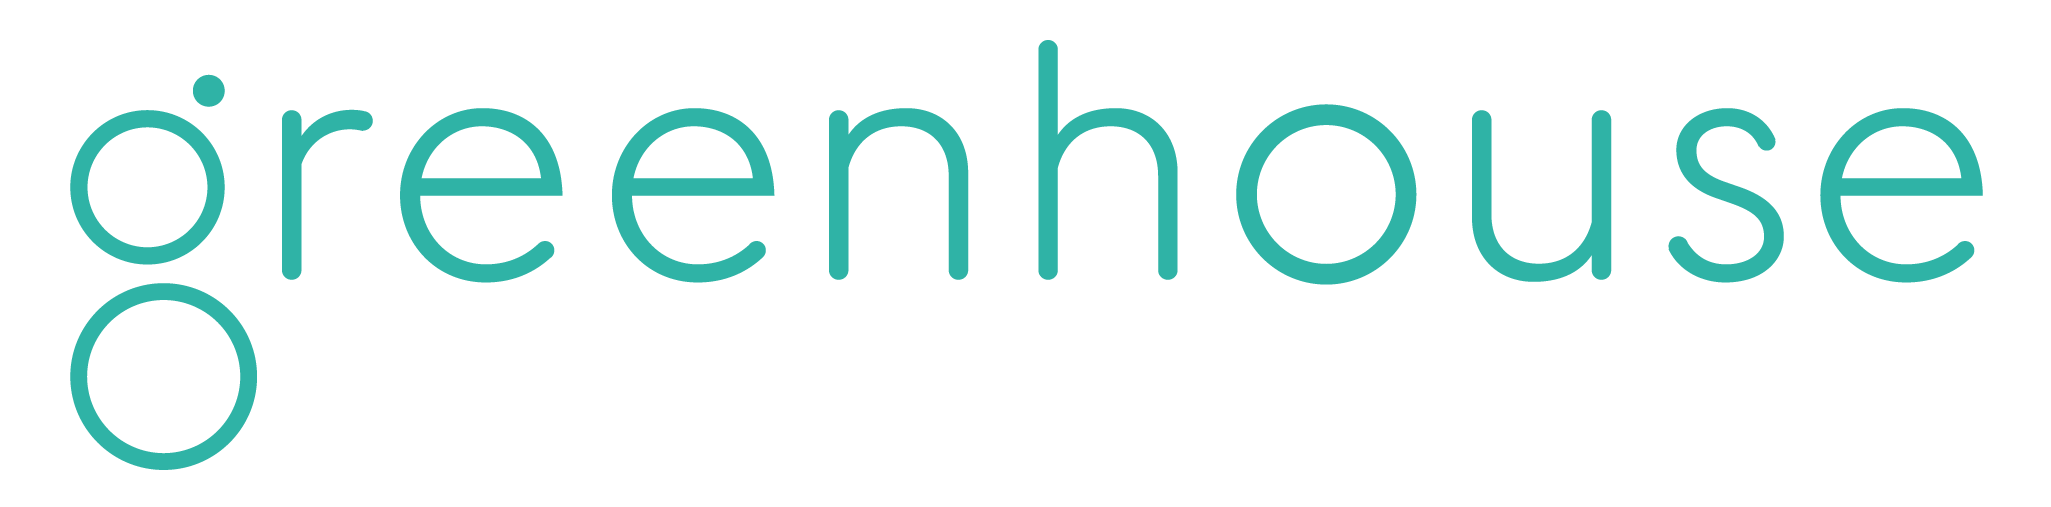 Optimize Hire integrates seamlessly with Greenhouse.IO.